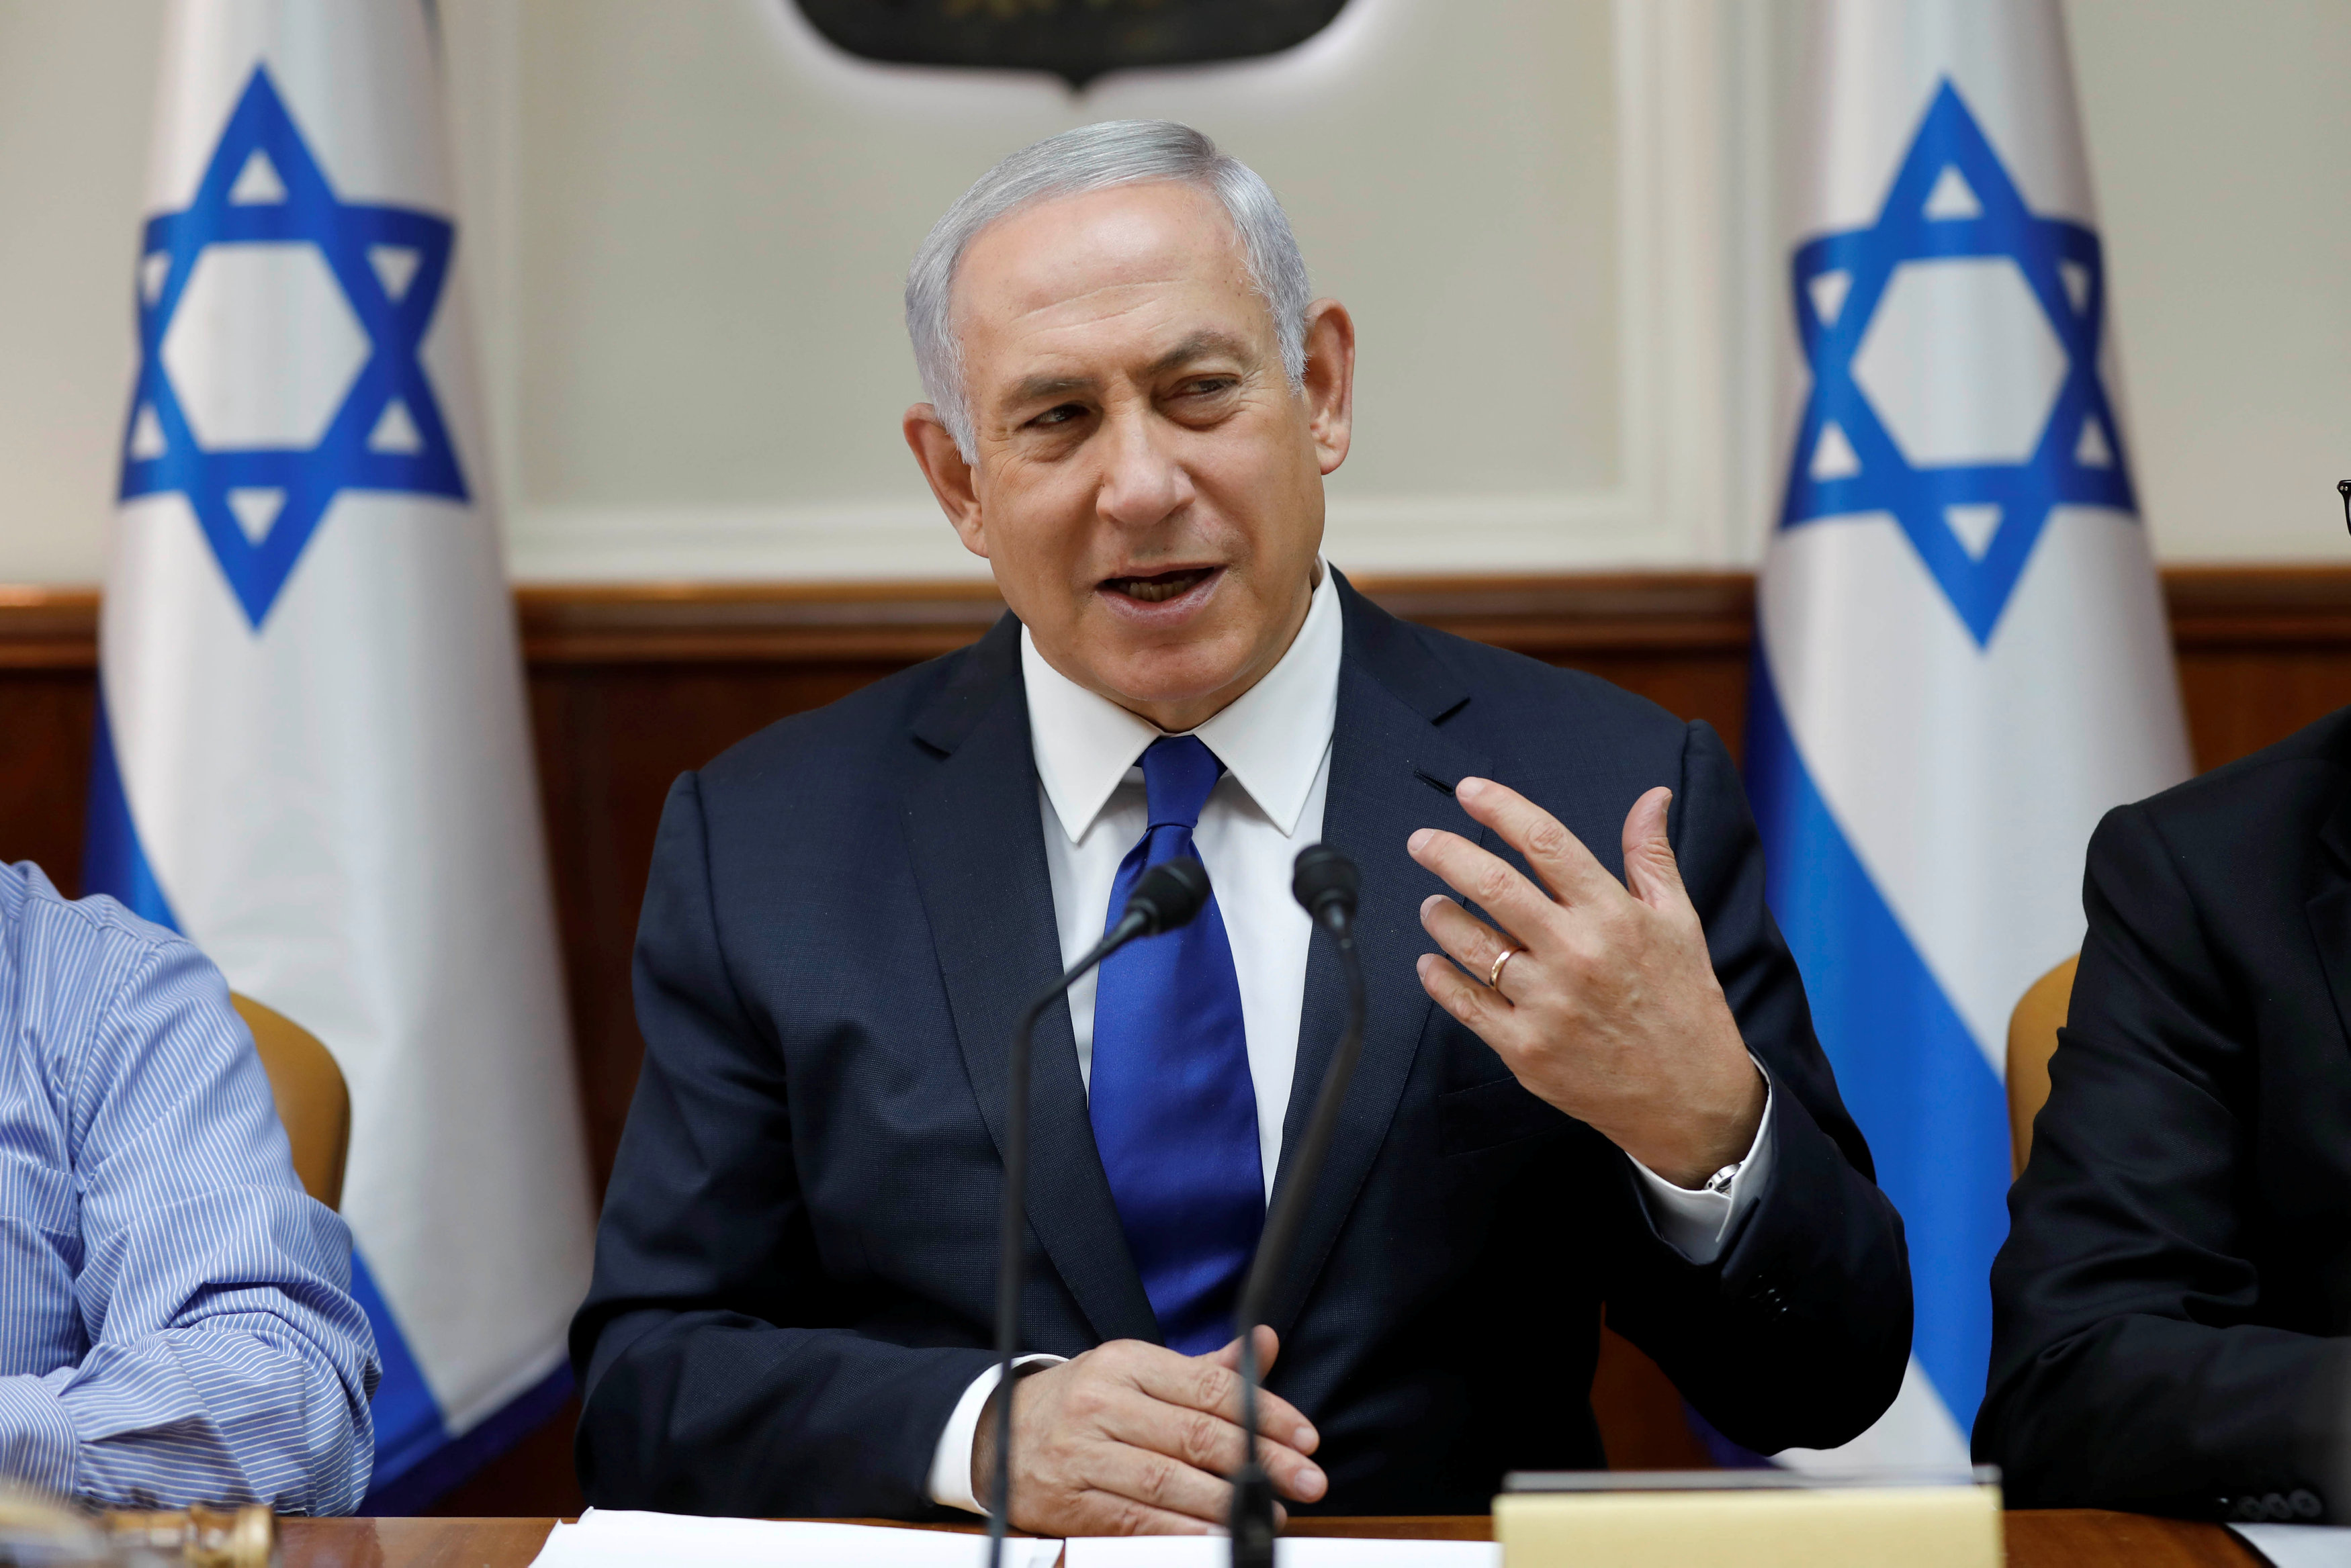 Israeli Prime Minister Benjamin Netanyahu attends the weekly cabinet meeting at his office in Jerusalem November 12, 2017.